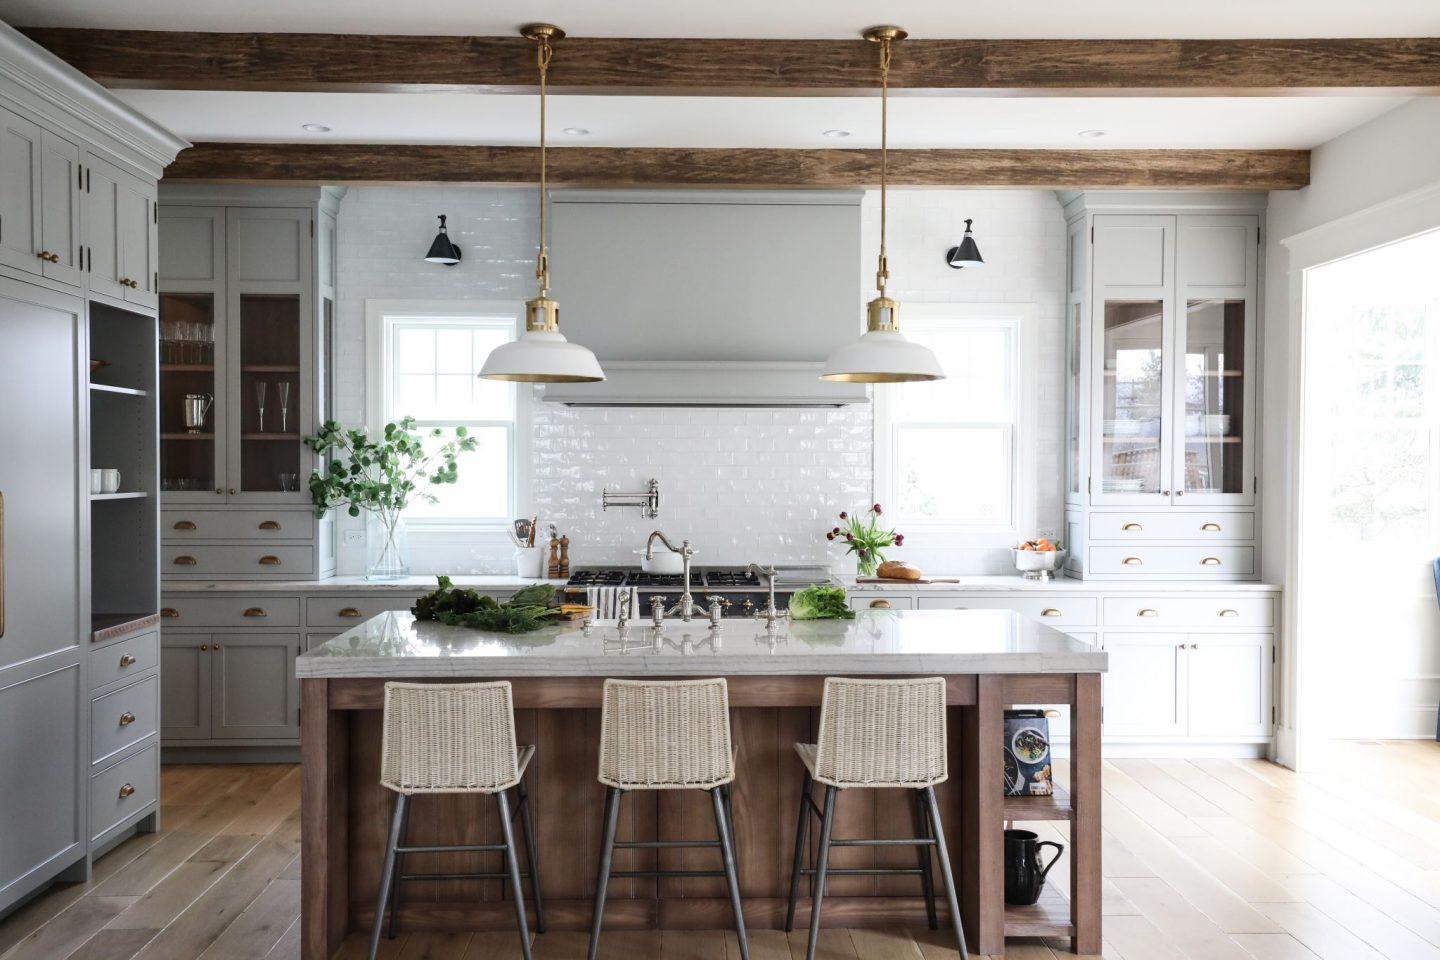 16 Simple Yet Sophisticated Kitchen Design Ideas - Hello ... on Traditional Kitchen Decor  id=79605